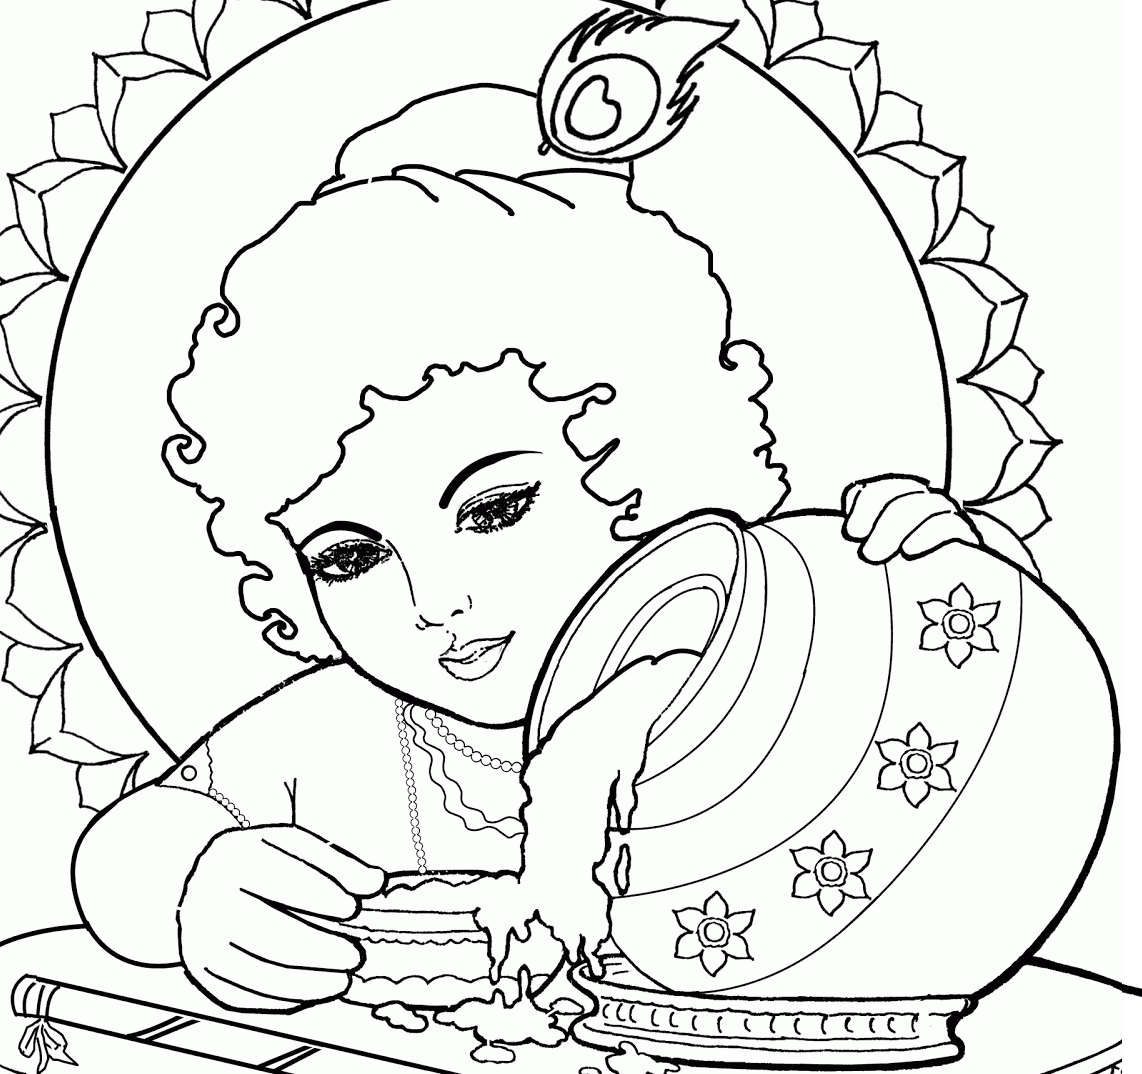 Lord baby krishna coloring drawing free wallpaper for Coloring pages of krishna